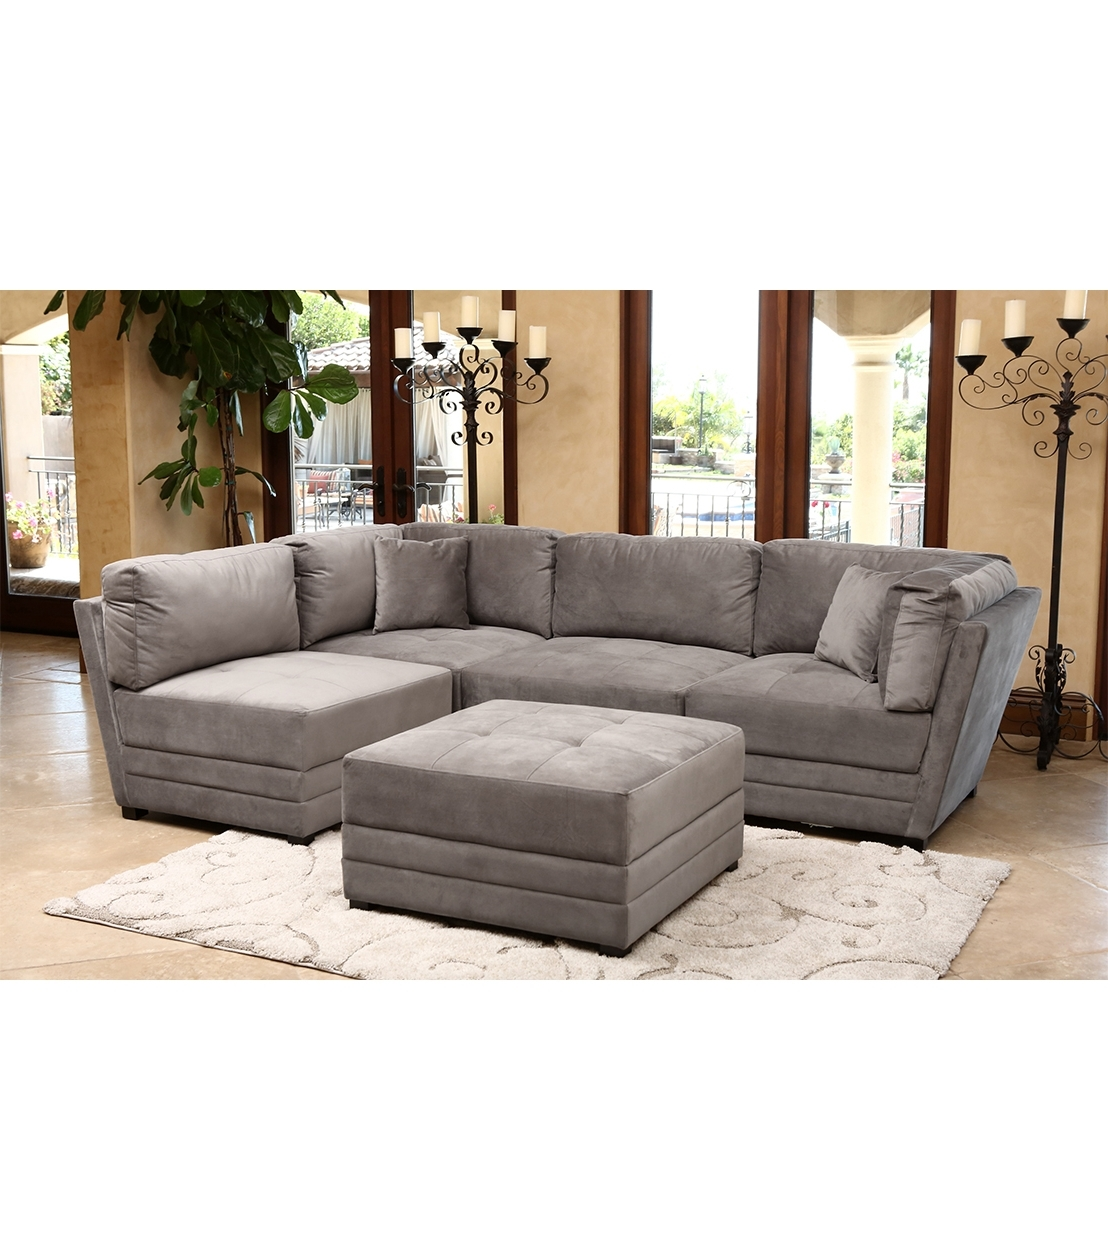 Abbyson Sectional Sofas With Famous Sectionals : Leyla Sectional, Taupe (View 8 of 15)